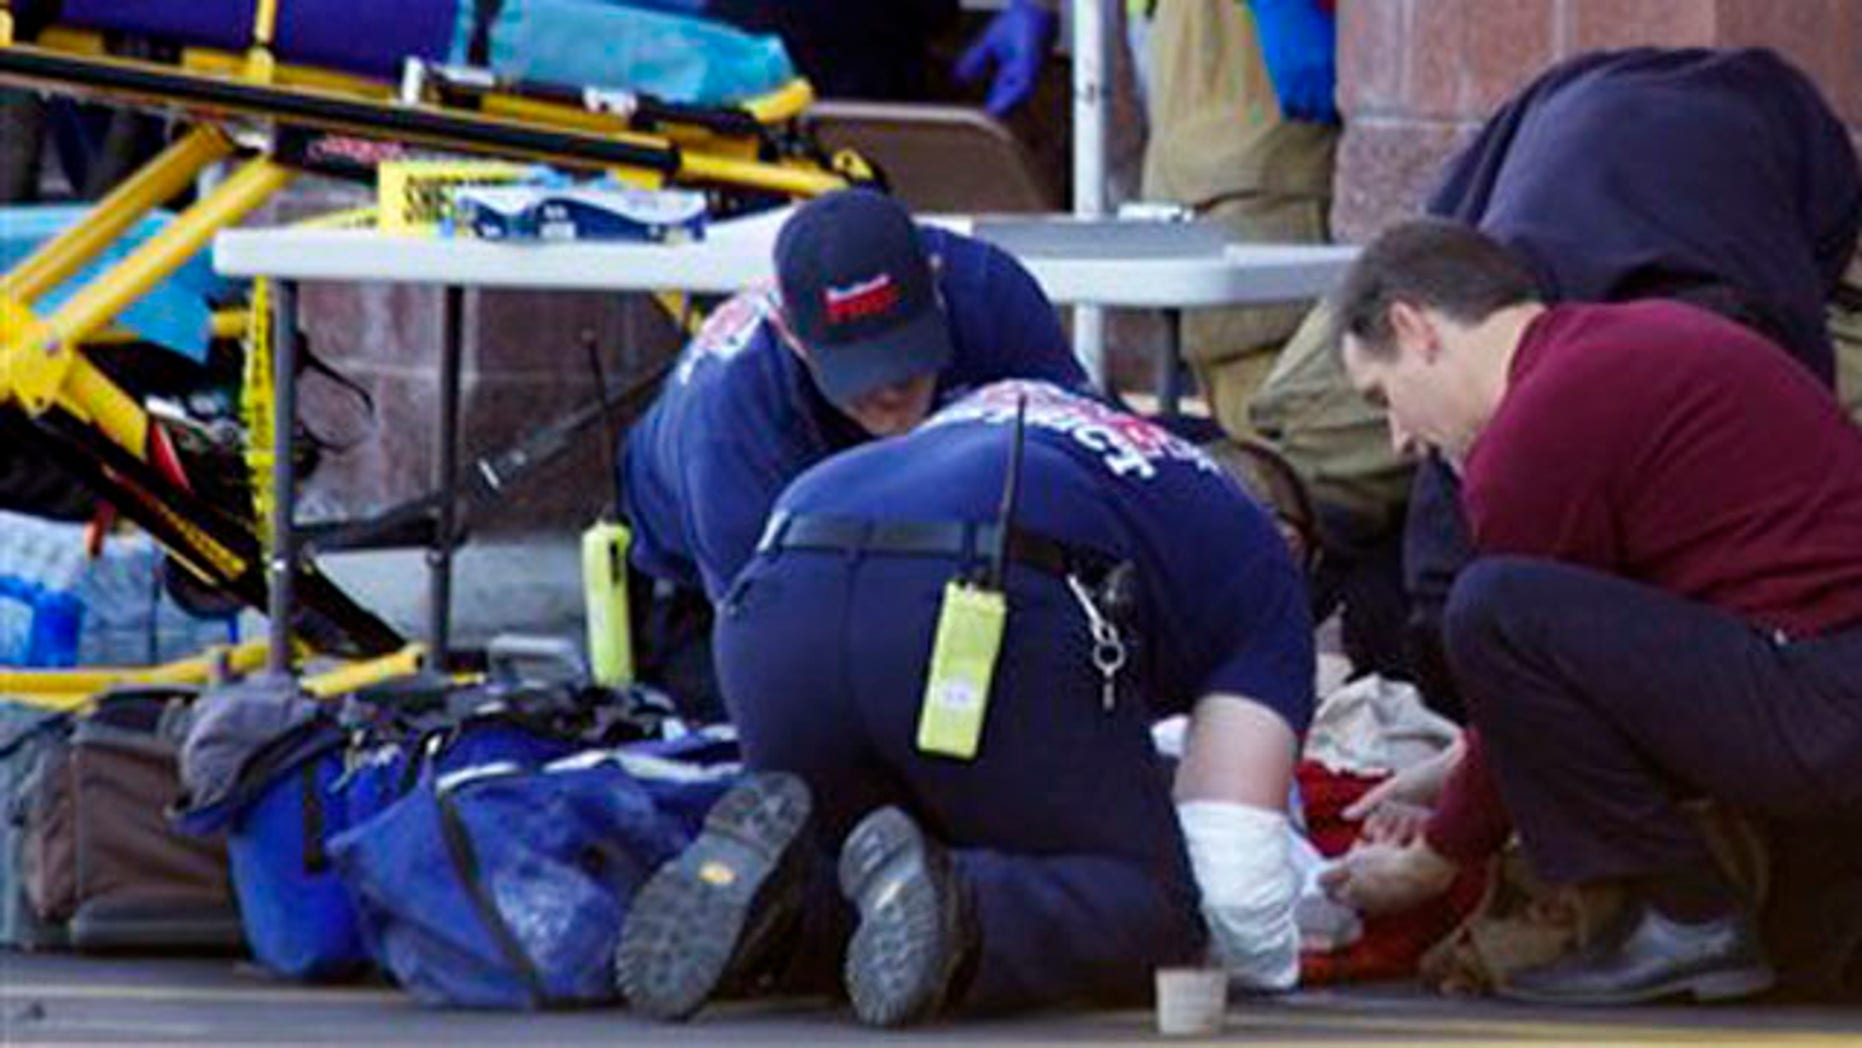 Emergency personnel attend to a shooting victim outside a shopping center in Tucson, Ariz., on Jan. 8.